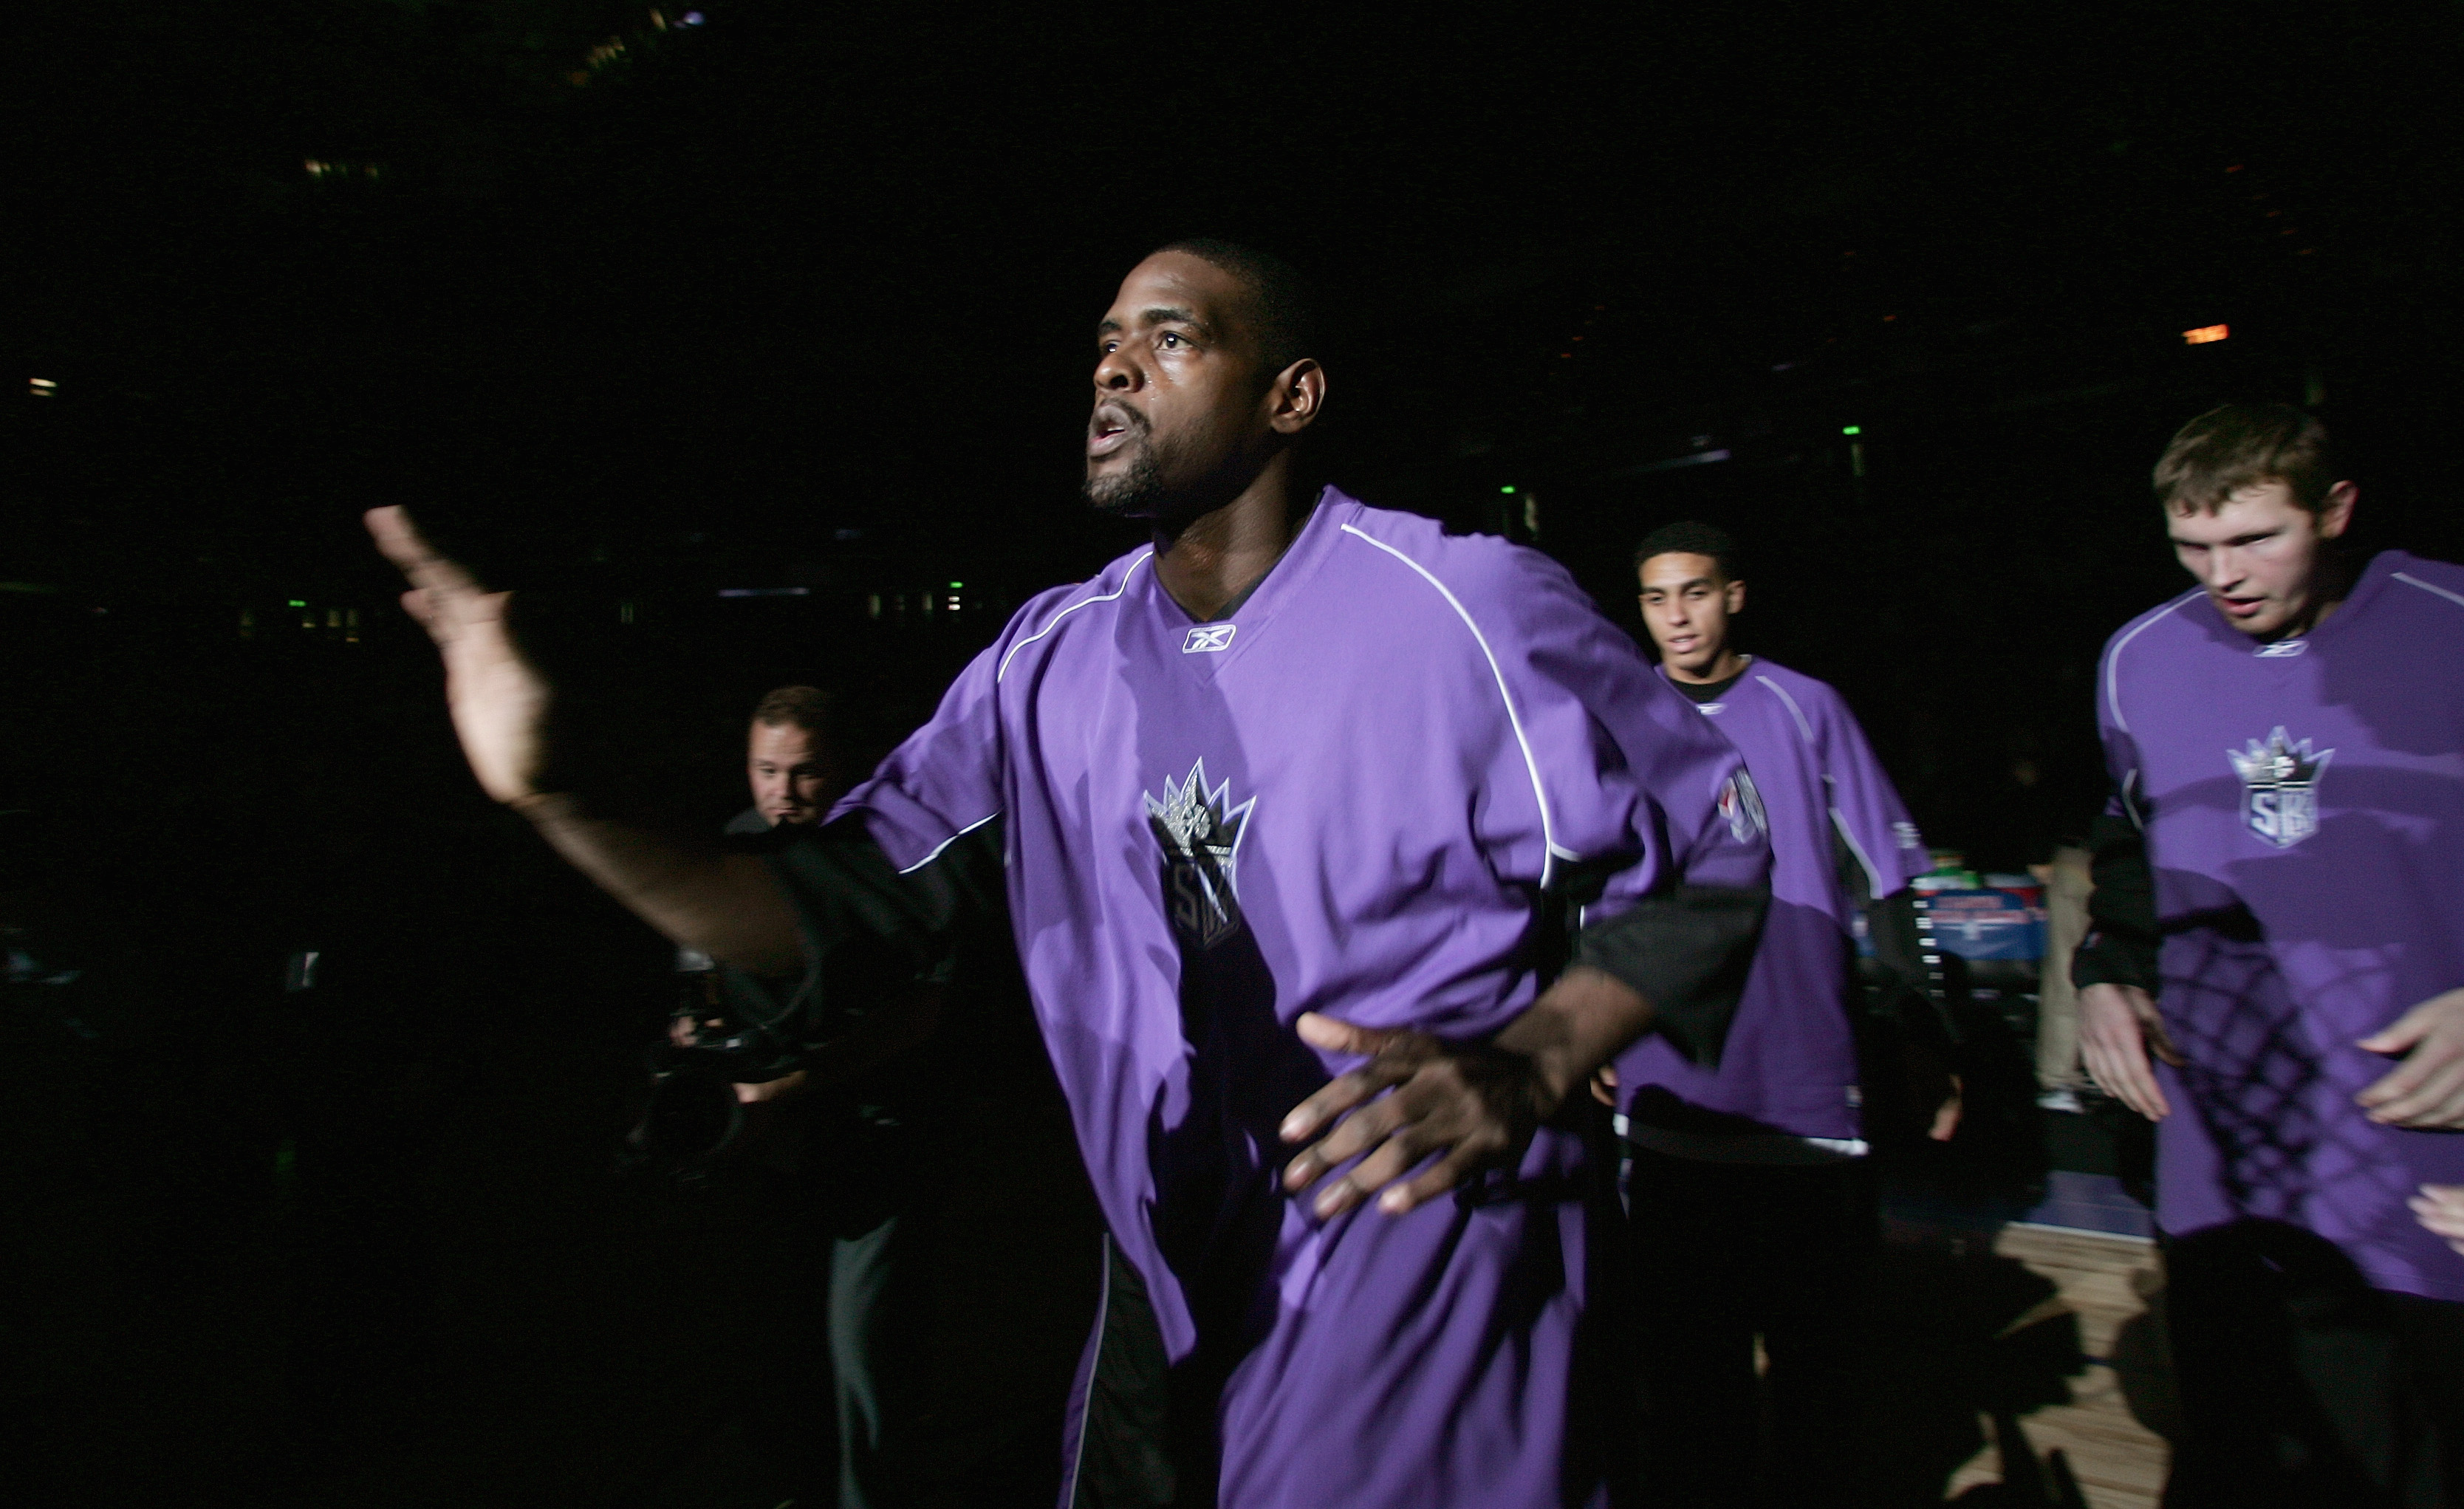 Chris Webber thinks Game 6 of 2002 Western Conference Finals was fixed